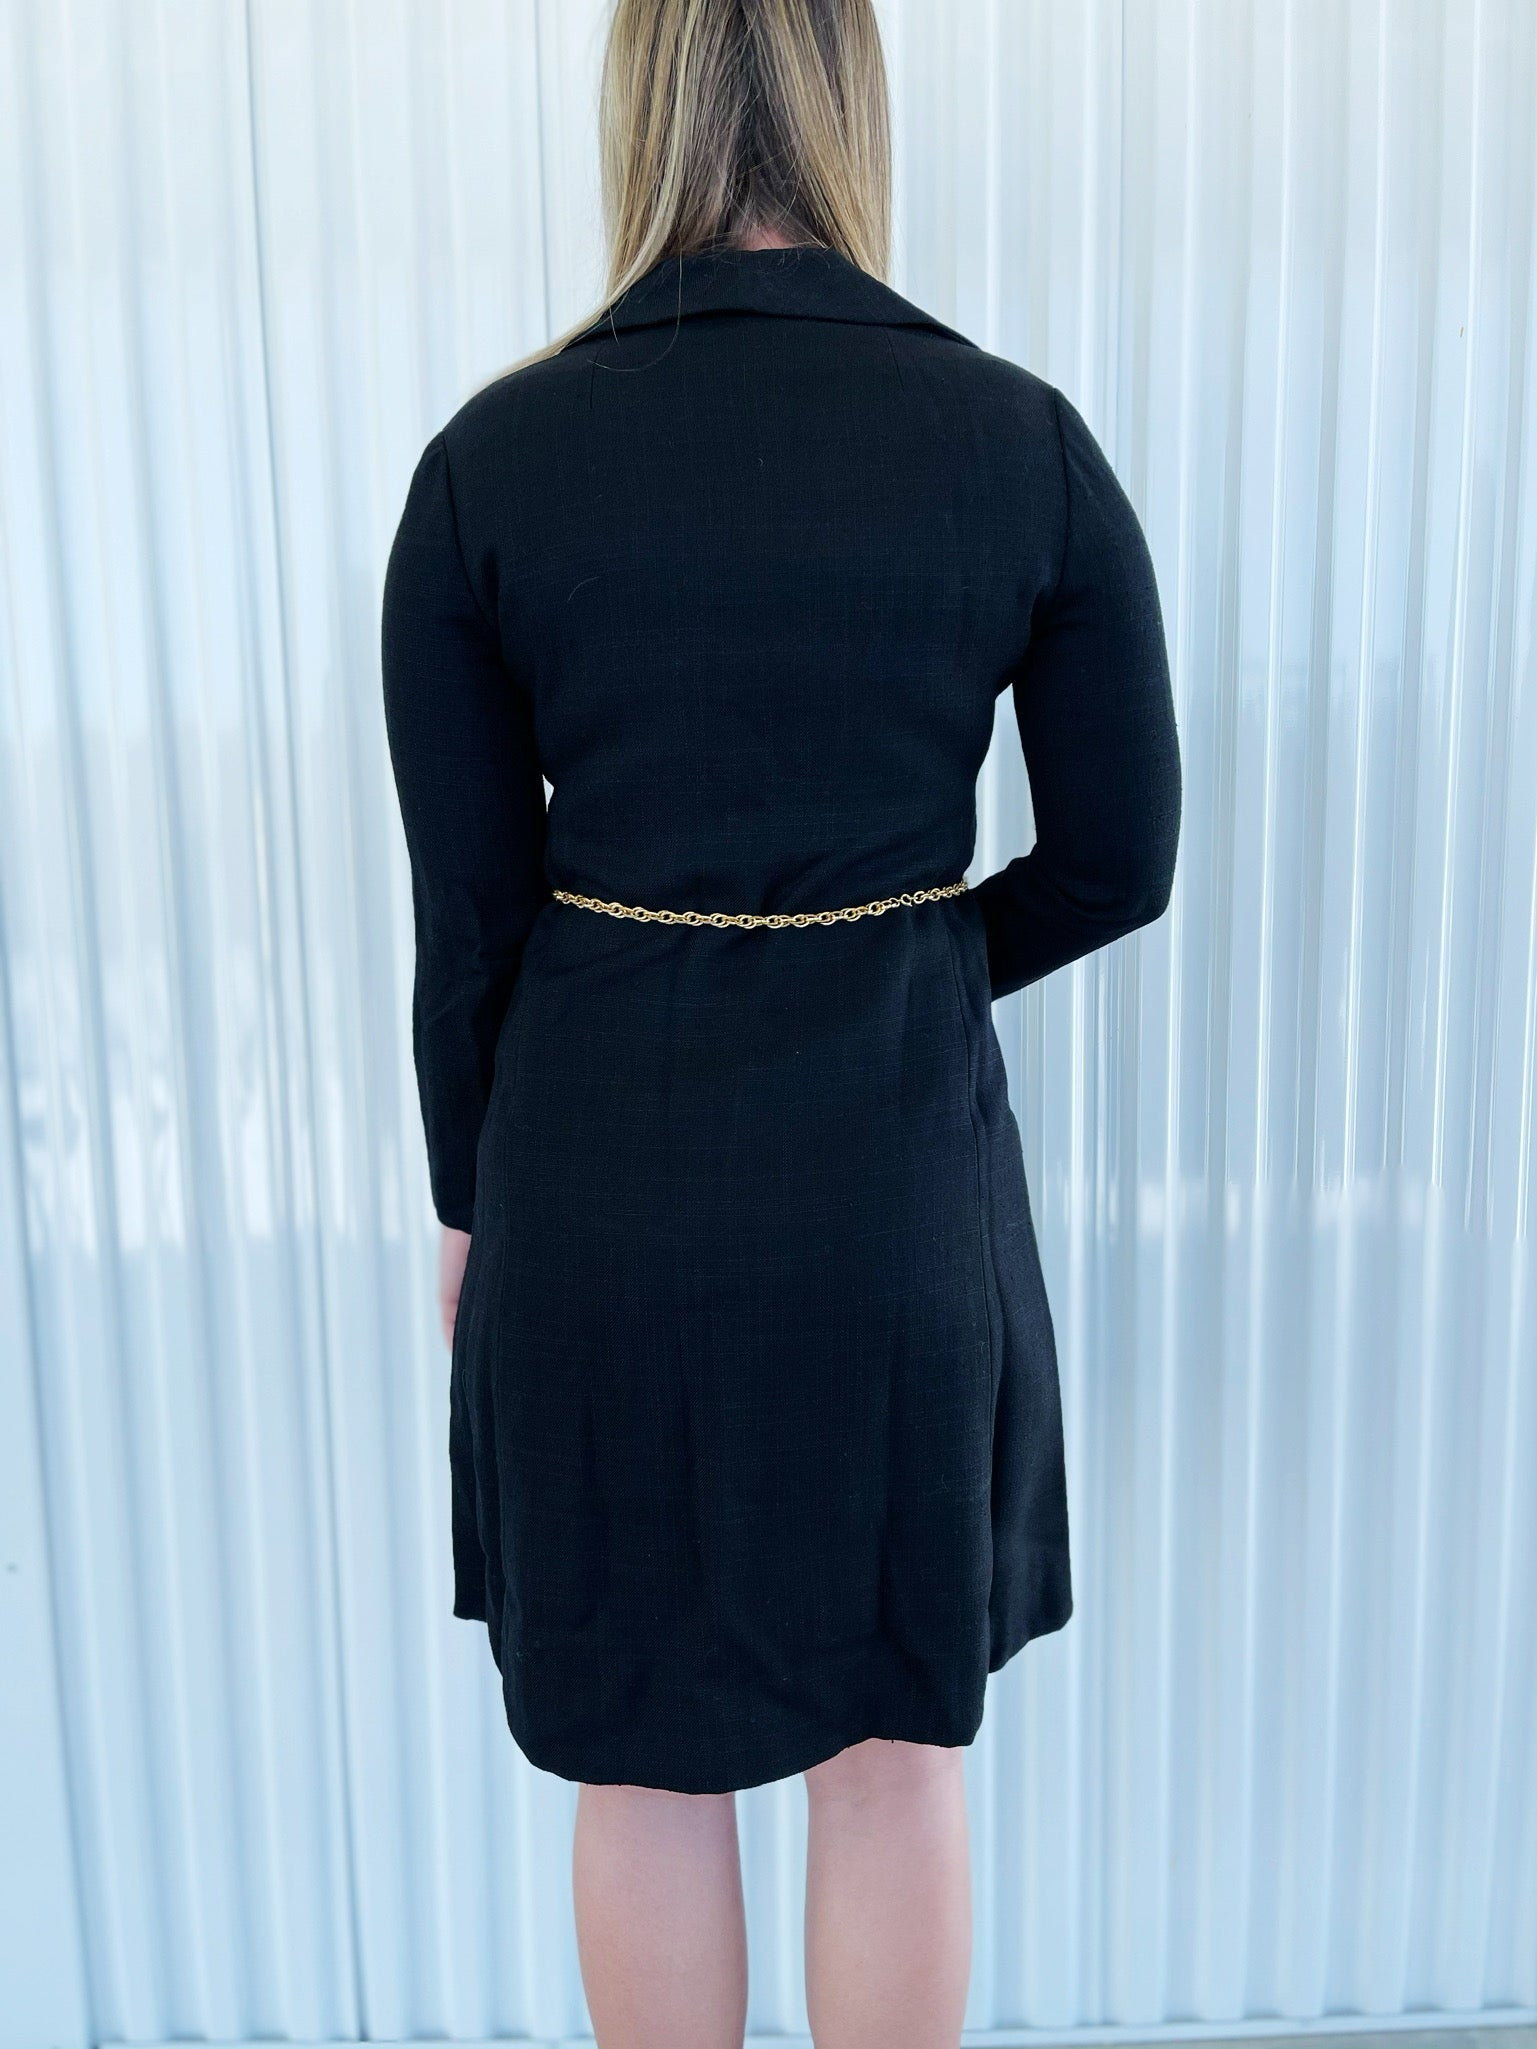 Adele Simpson Black Linen Dress with Chain Belt